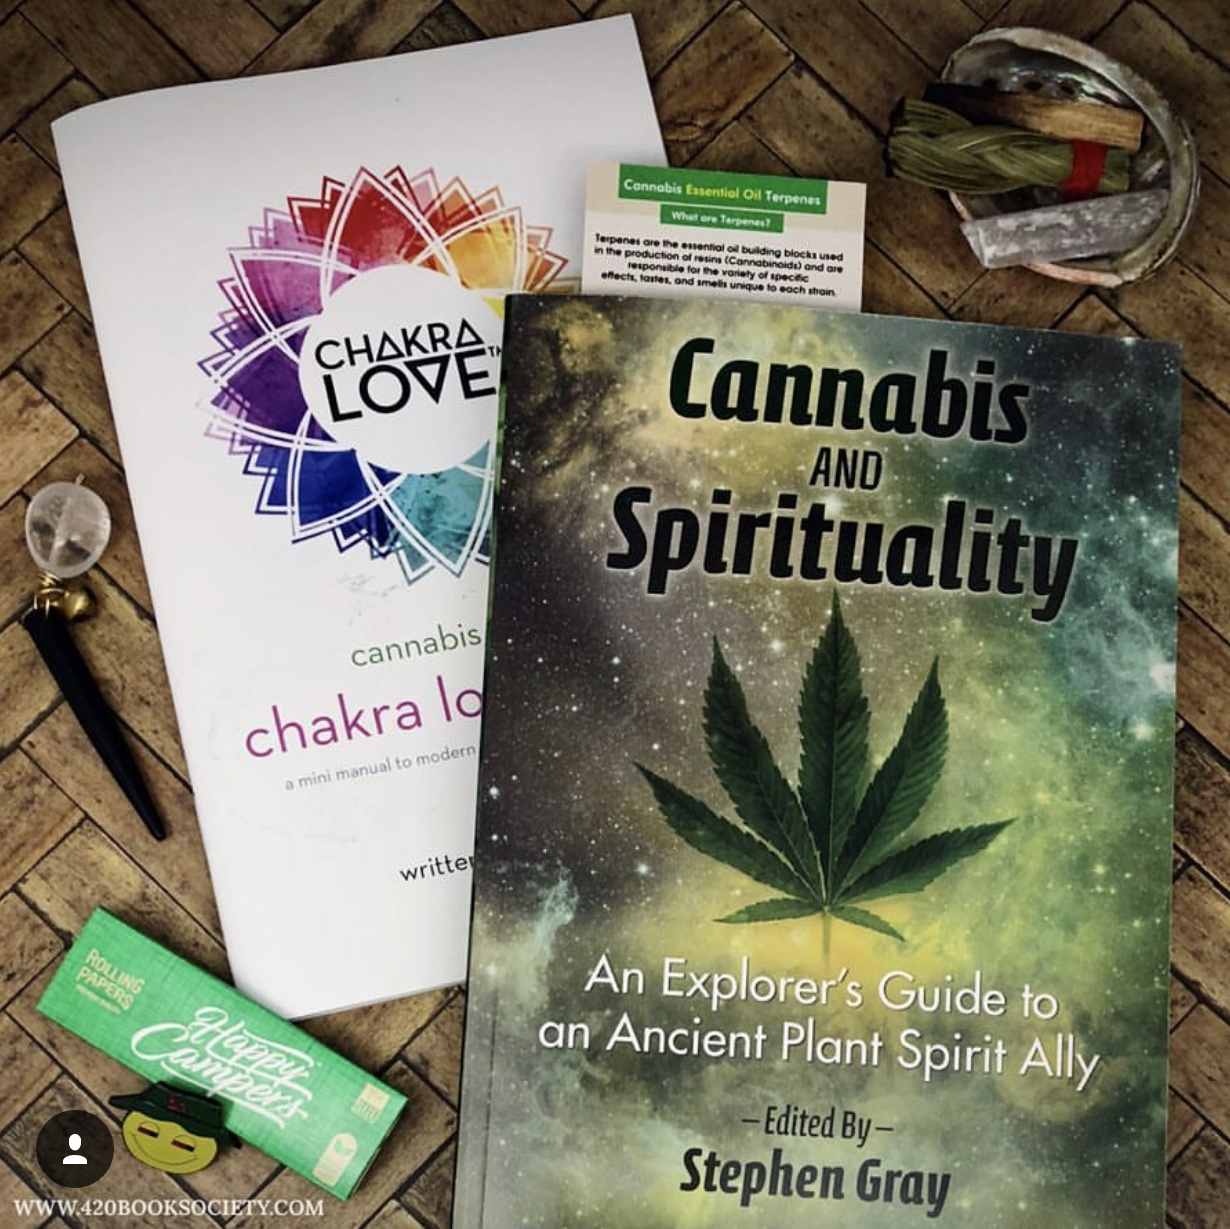 "August 2018    This months membership features ""Cannabis and Spirituality"", An Explorers Guide to an Ancient Plant Spirit Ally by Stephen Gray  Cannabis and Spirituality reveals the potential of ""the people's plant"" to enhance many different spiritual practices, included yoga, meditation, visualization, and much more. This guide shows how cannabis is an effective tool on the awakening journey, helping us feel closer to nature, each other and ourselves. Also included with August book of the month is ""Chakra Love Basics, Cannabis Edition"" mini manual and quartz cone stuffer by Chakra Love Cannabis and a Smudge Kit to Go including sweetgrass, palo santo, and selenite and as always a few other surprises."